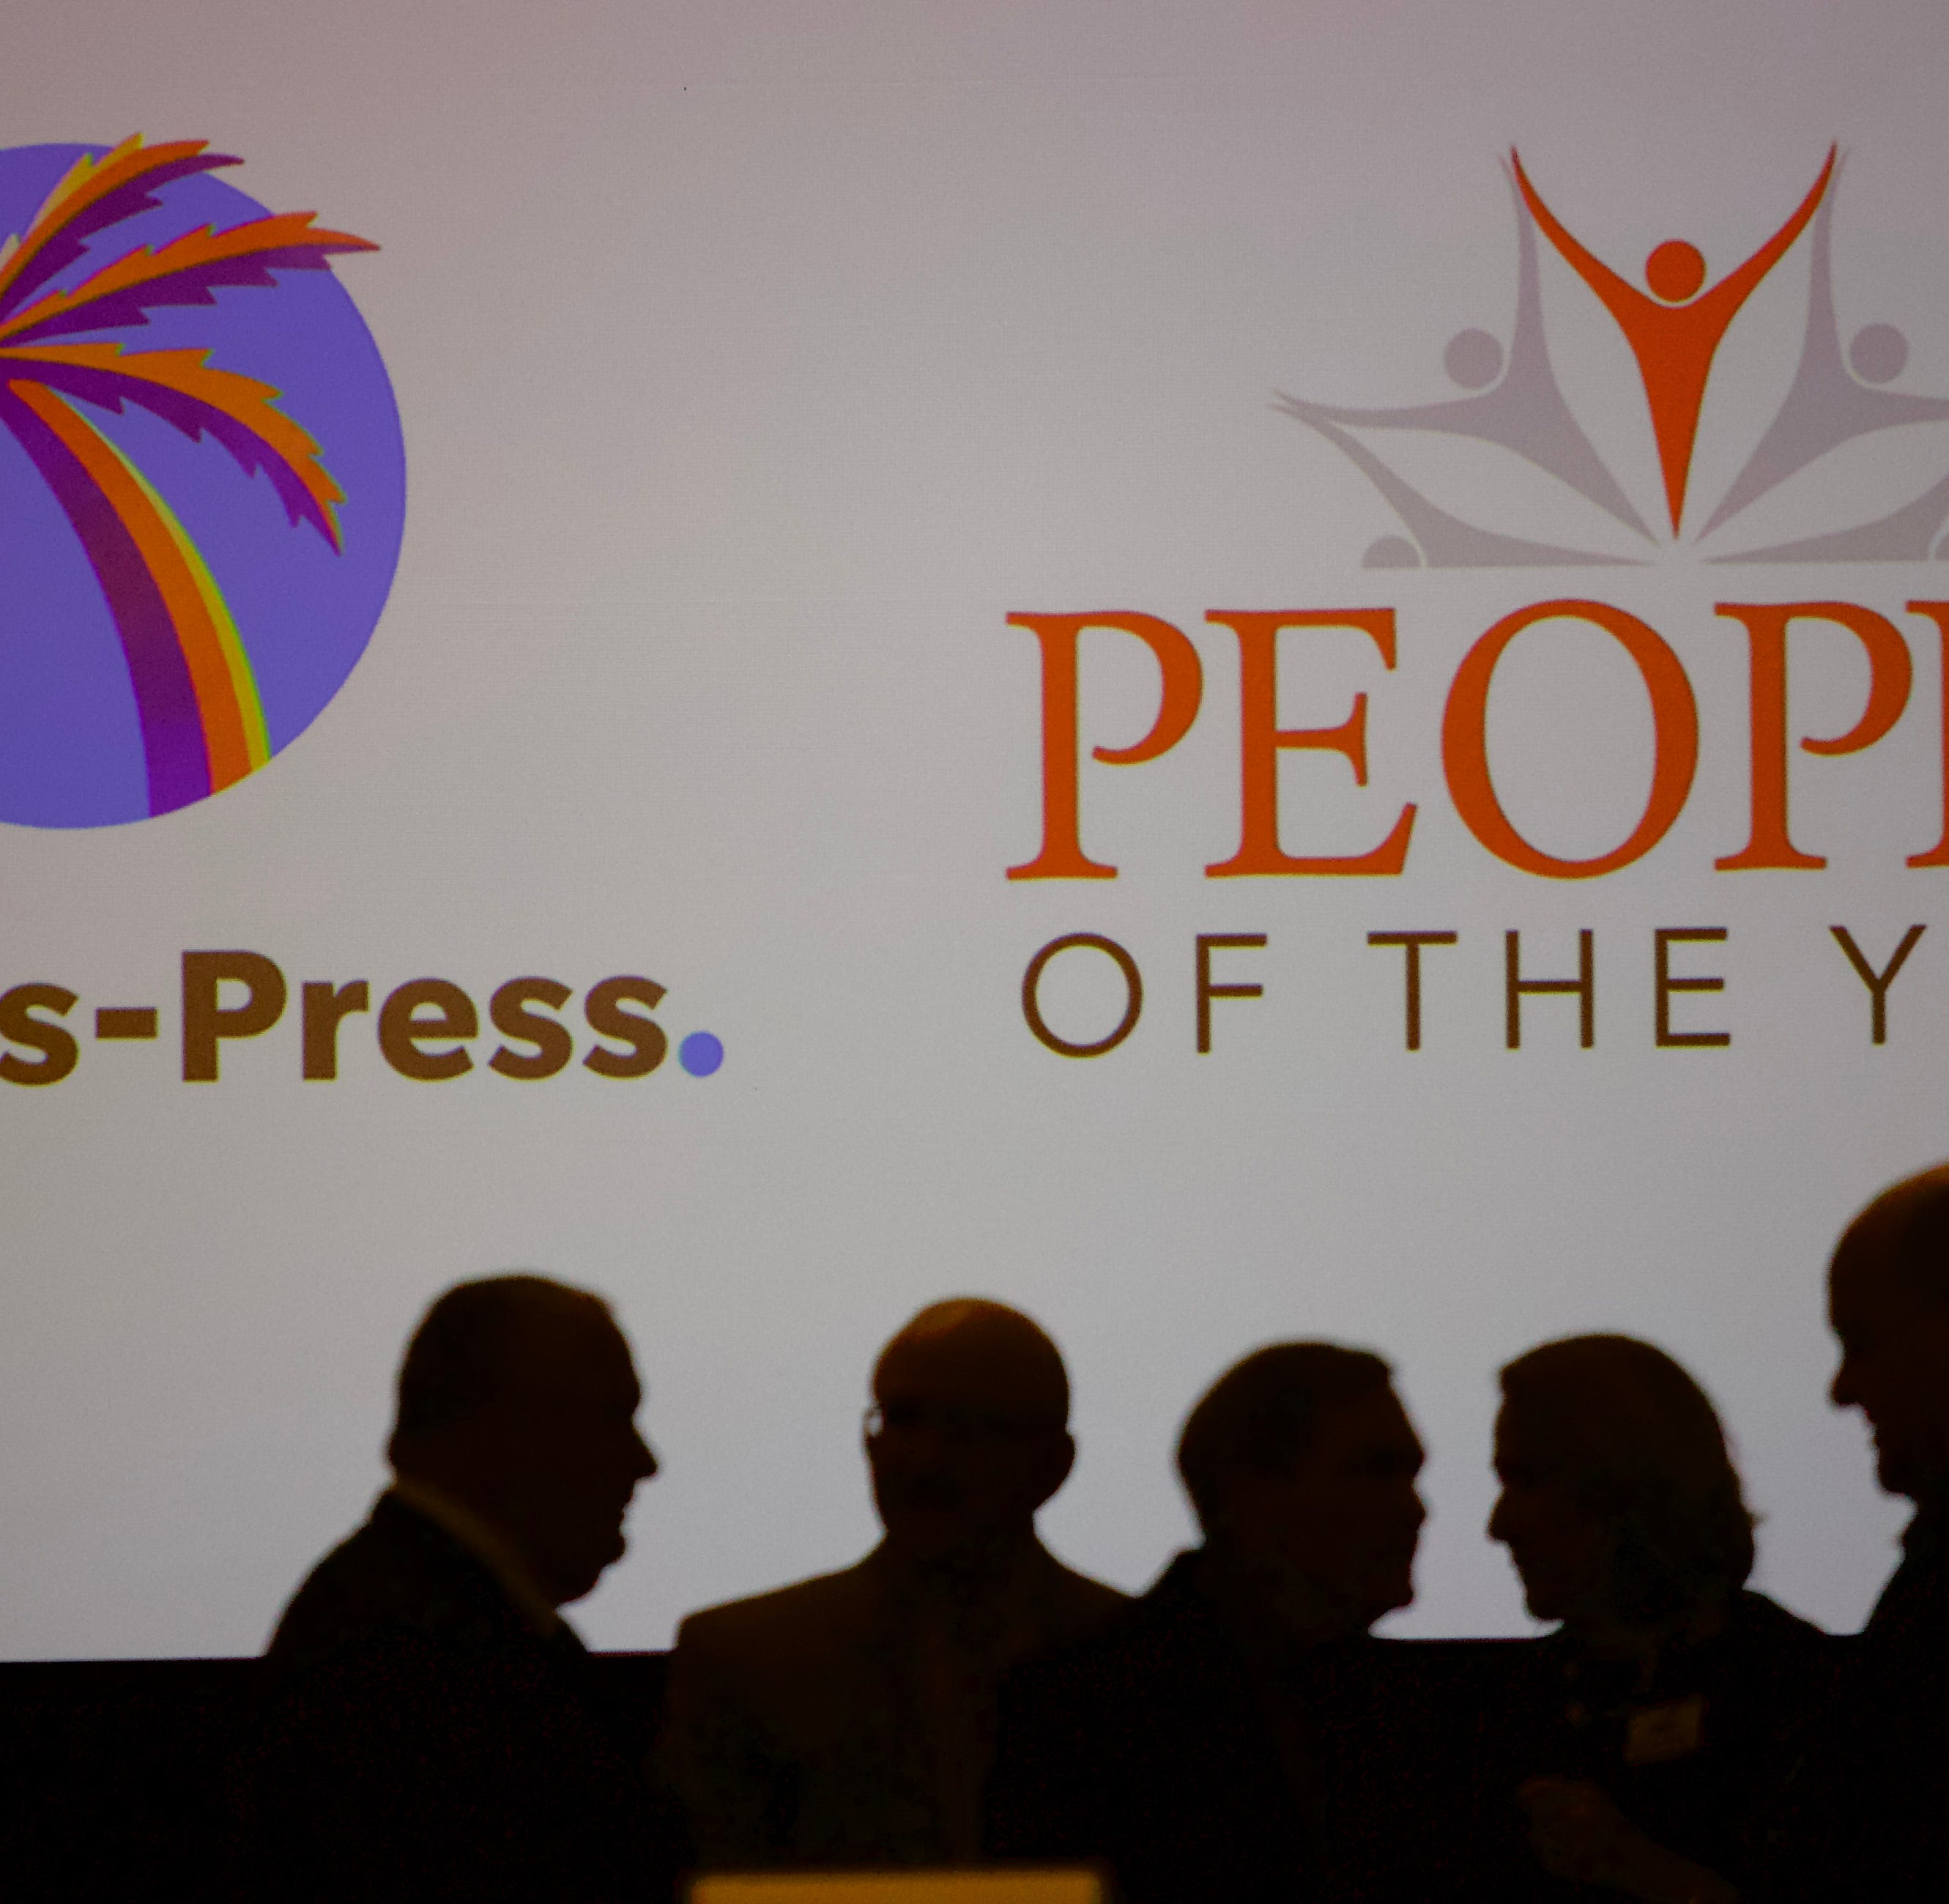 News-Press People of the Year awards: FGCU President Dr. Michael Martin named 2018 Person of the Year